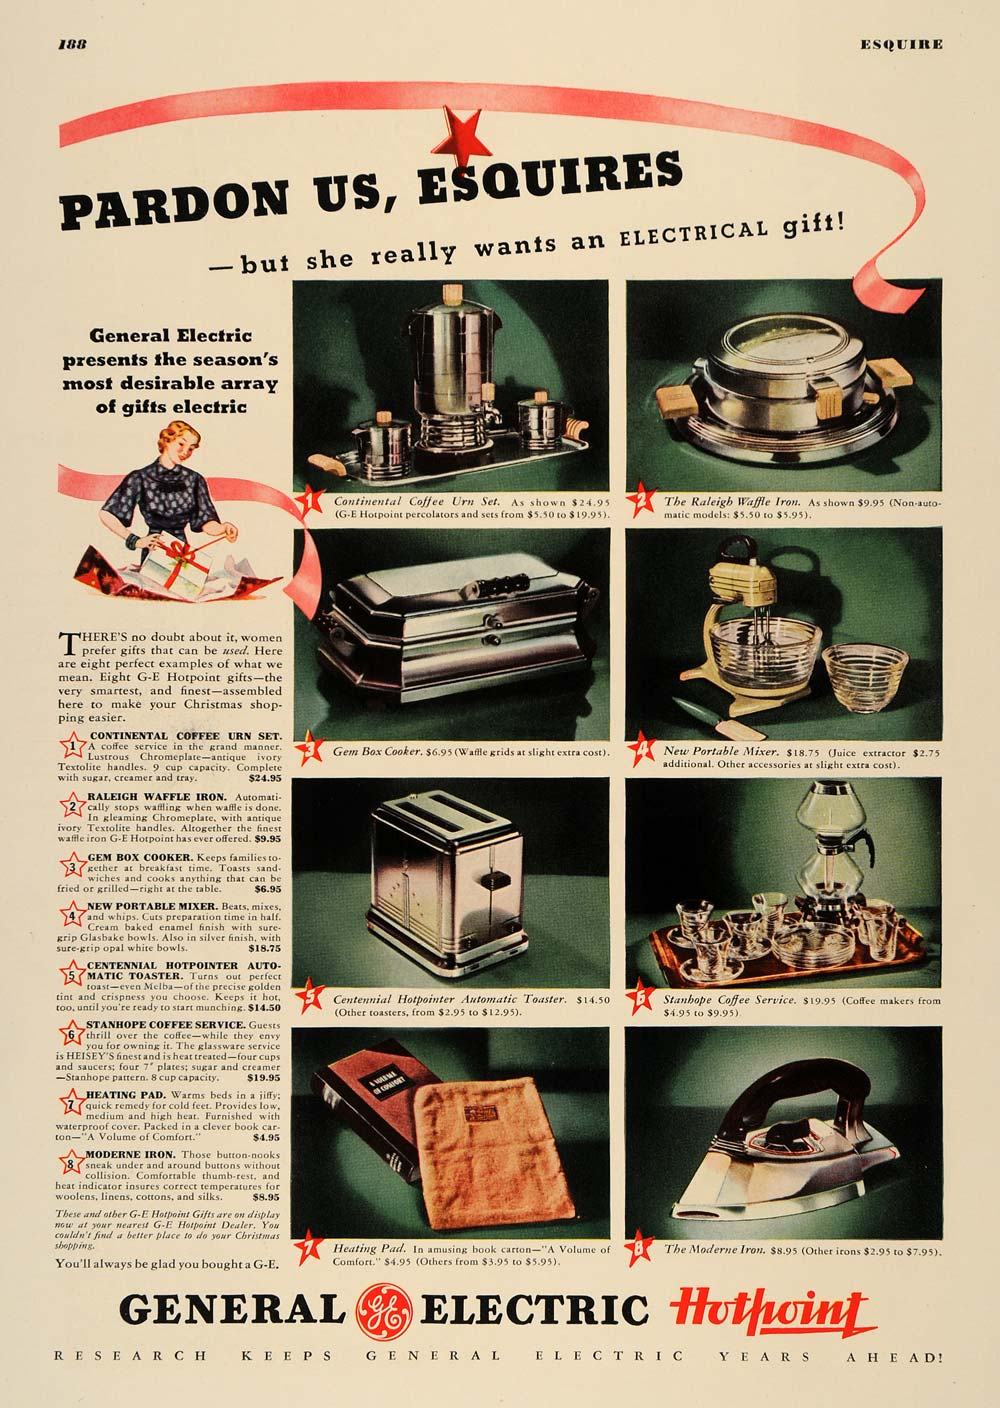 1936 Ad General Electric Kitchen Appliances Housewife - ORIGINAL ESQ1